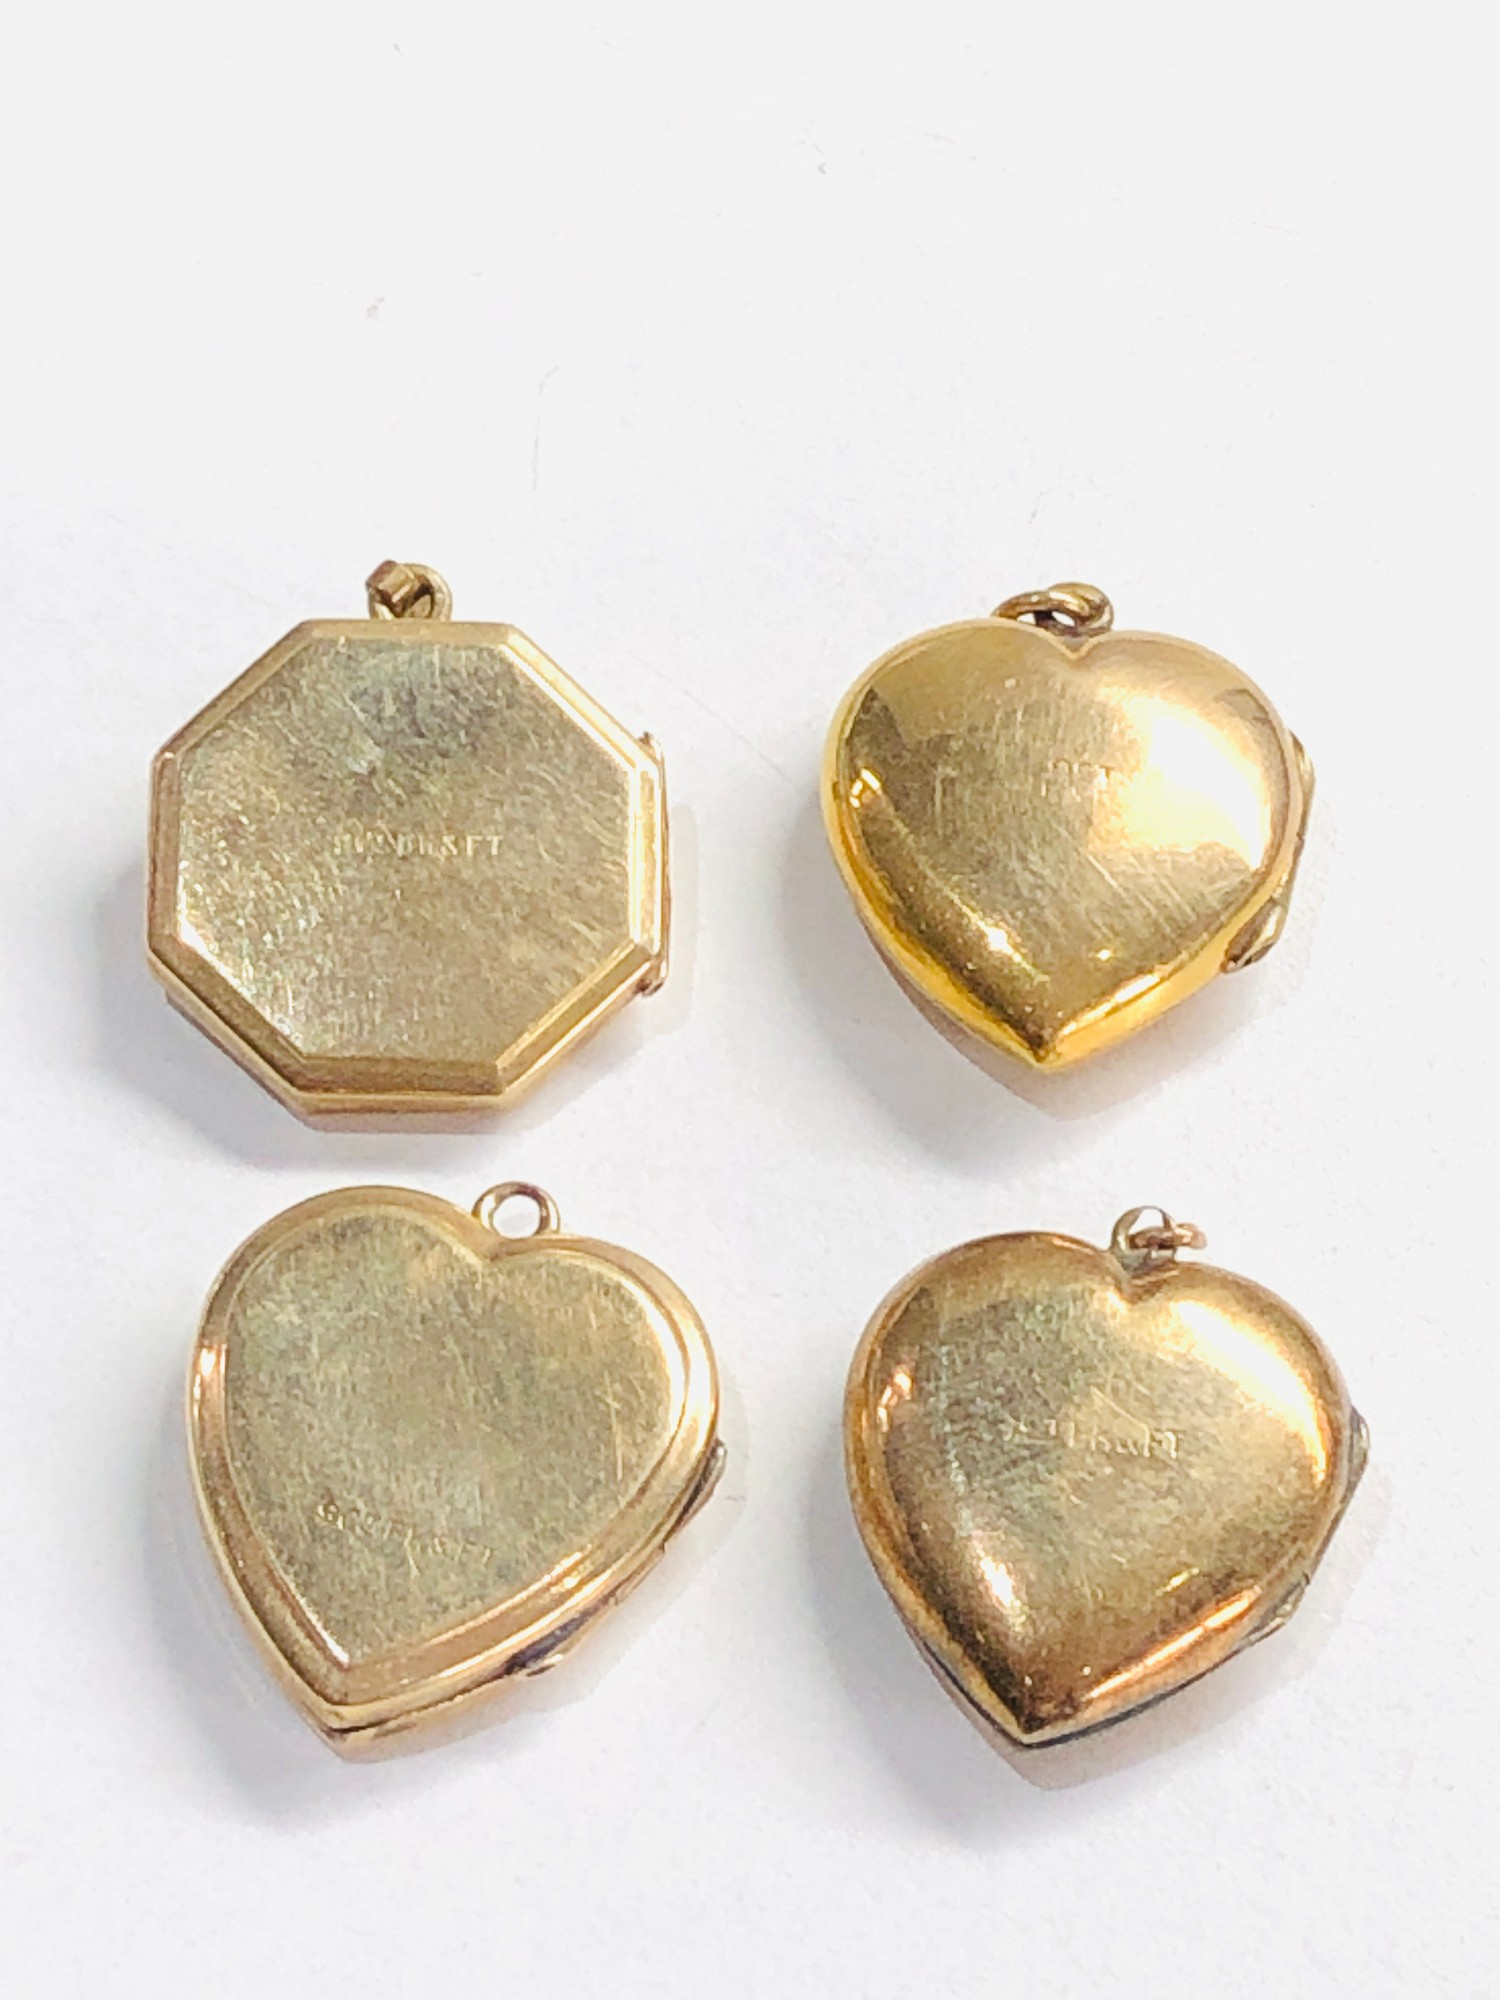 4 x 9ct back & front lockets 12.8g - Image 3 of 3